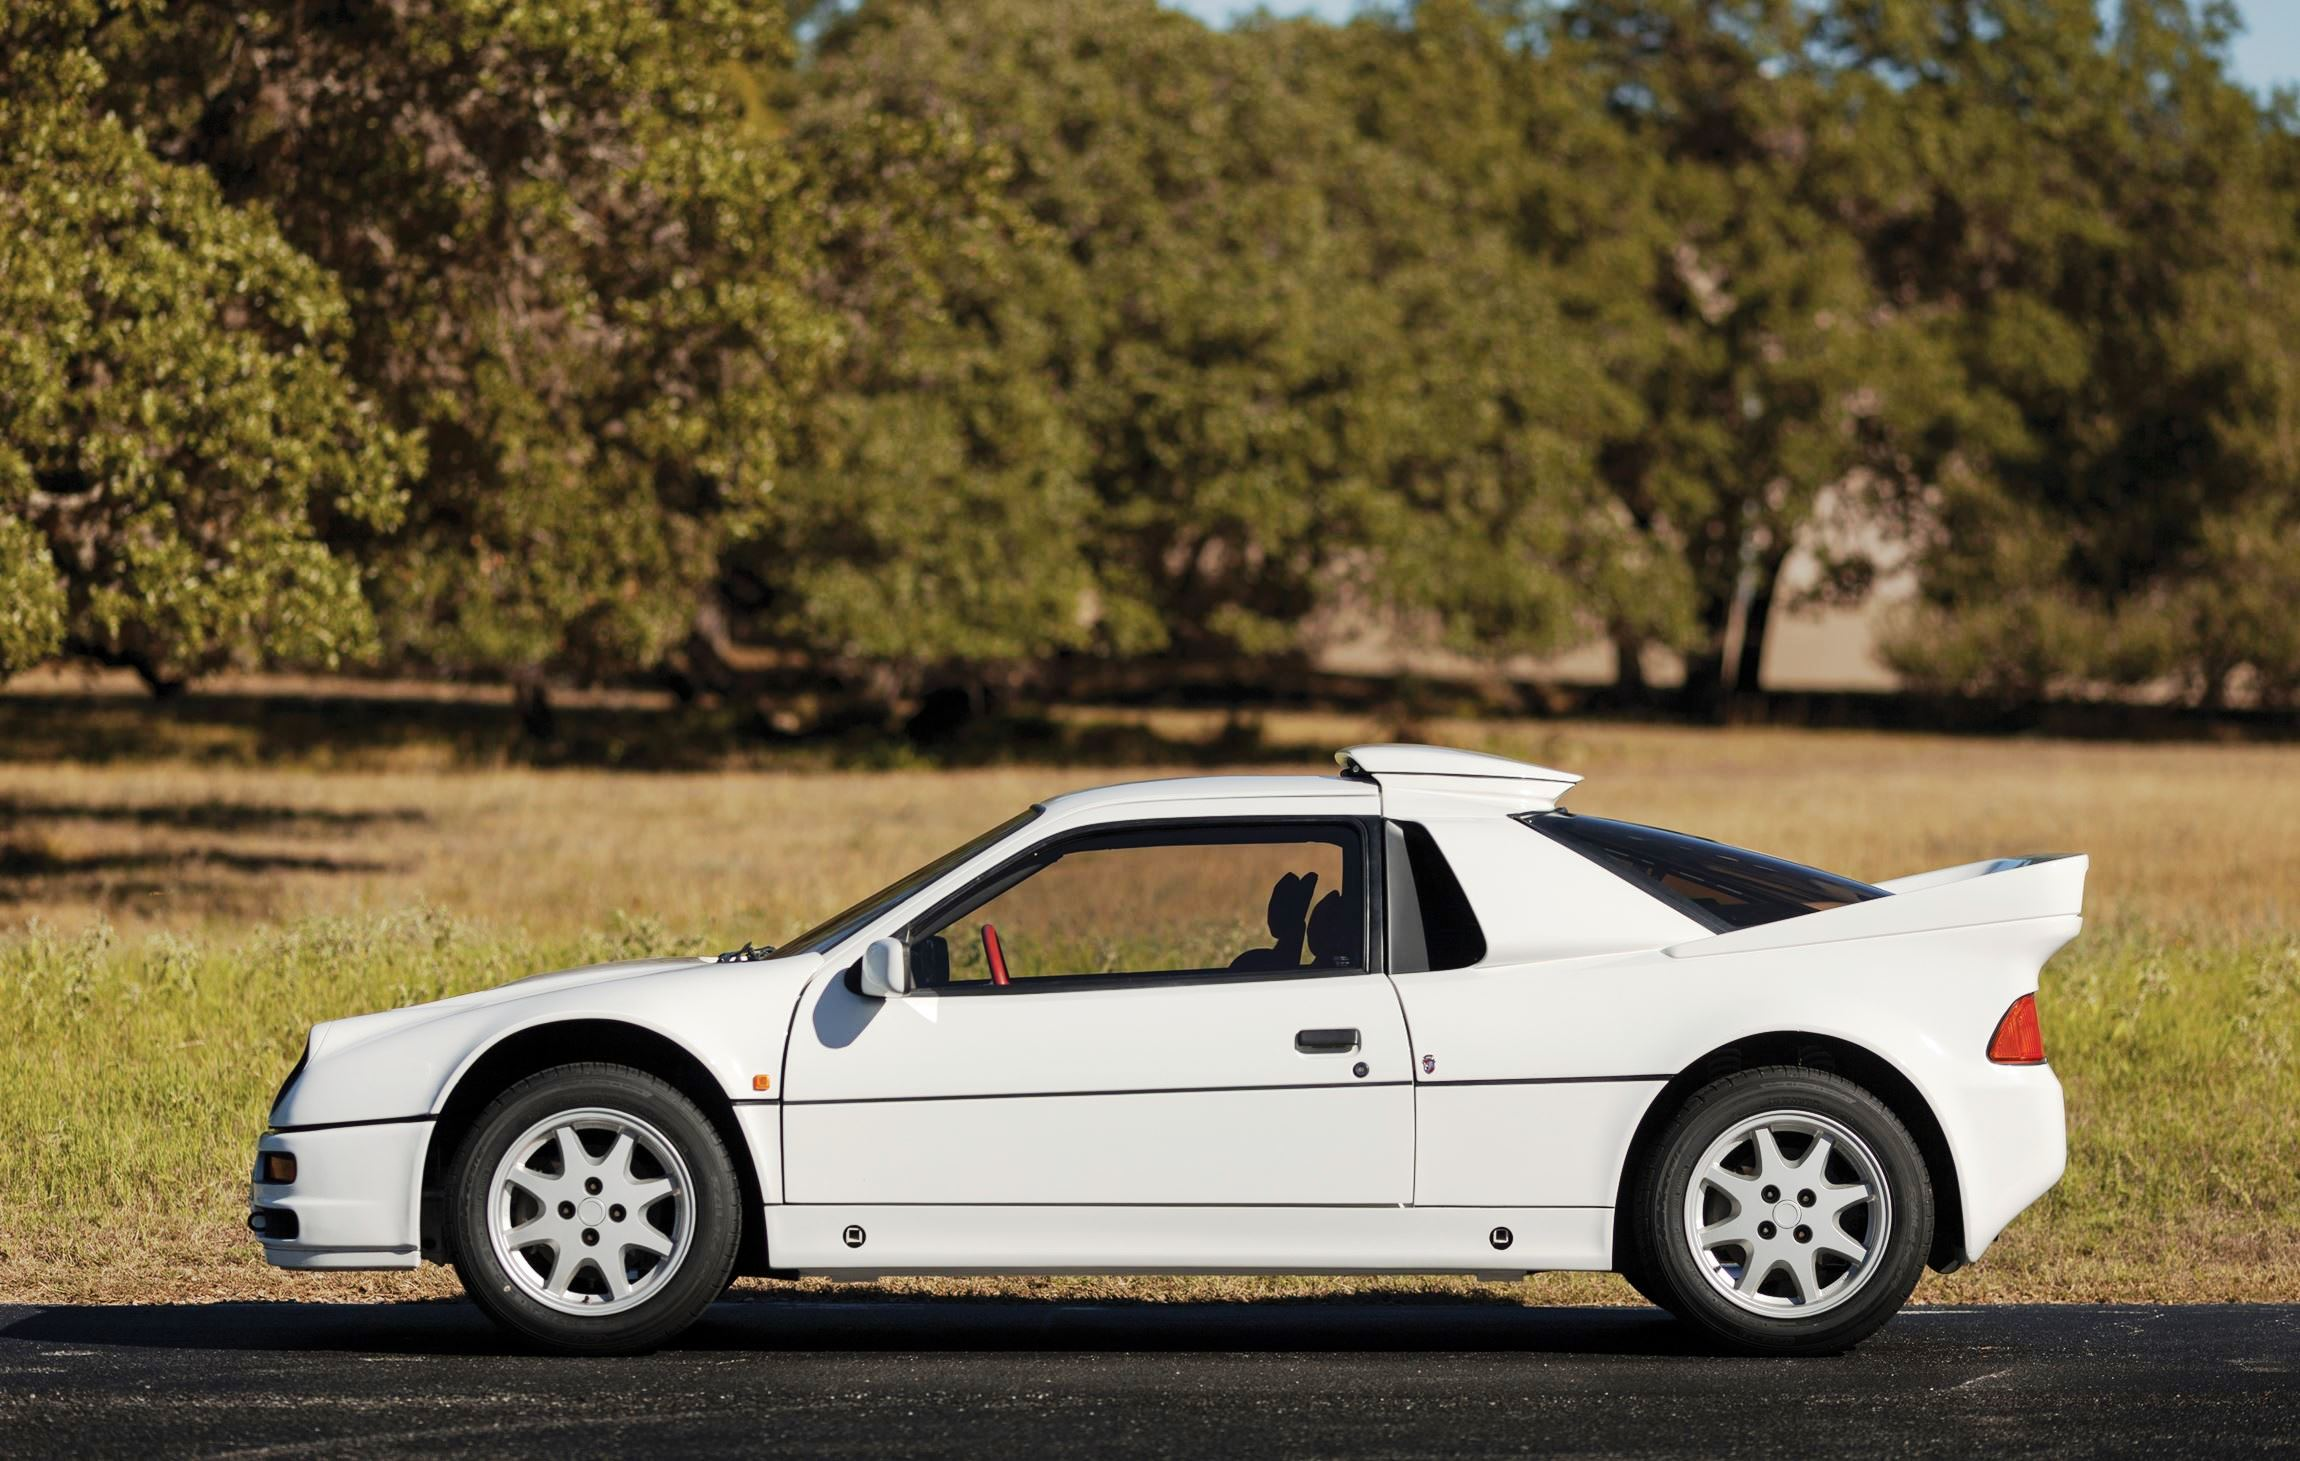 Legend Car Body For Sale - Group b debrief 1986 ford rs200 road legal rally legend